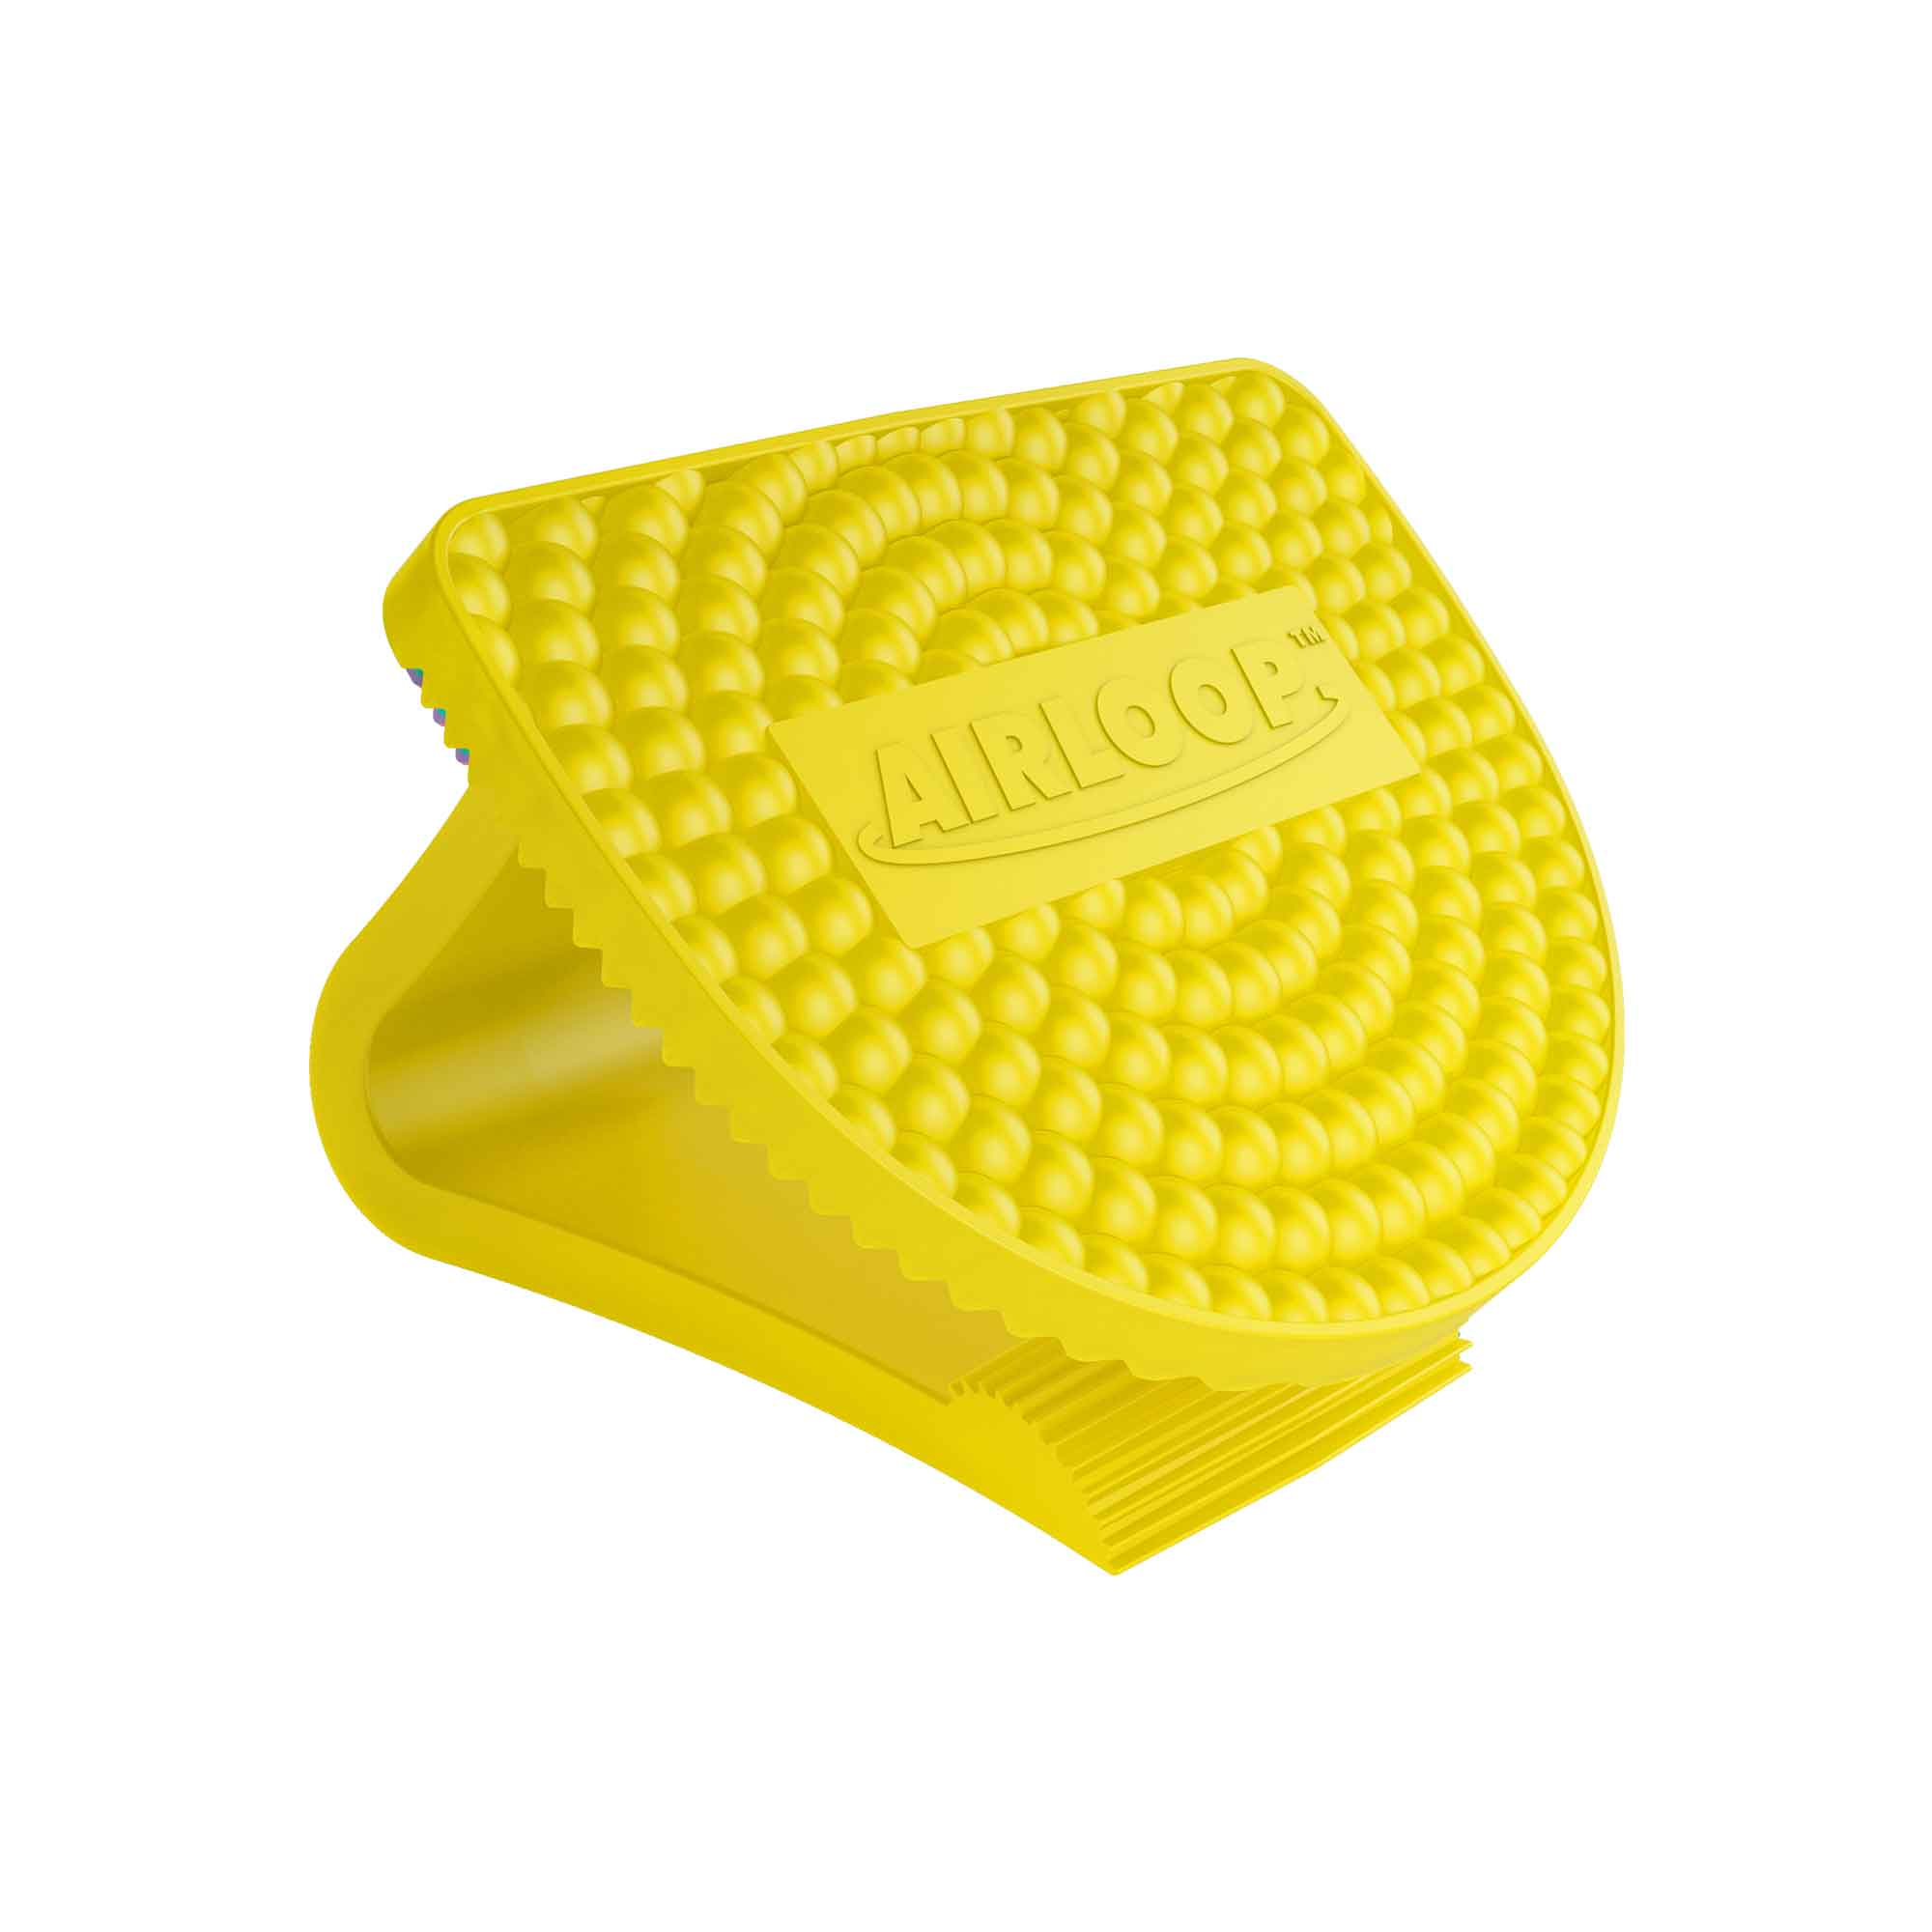 Airloop Toilet Bowl Clip - Citrus Mango